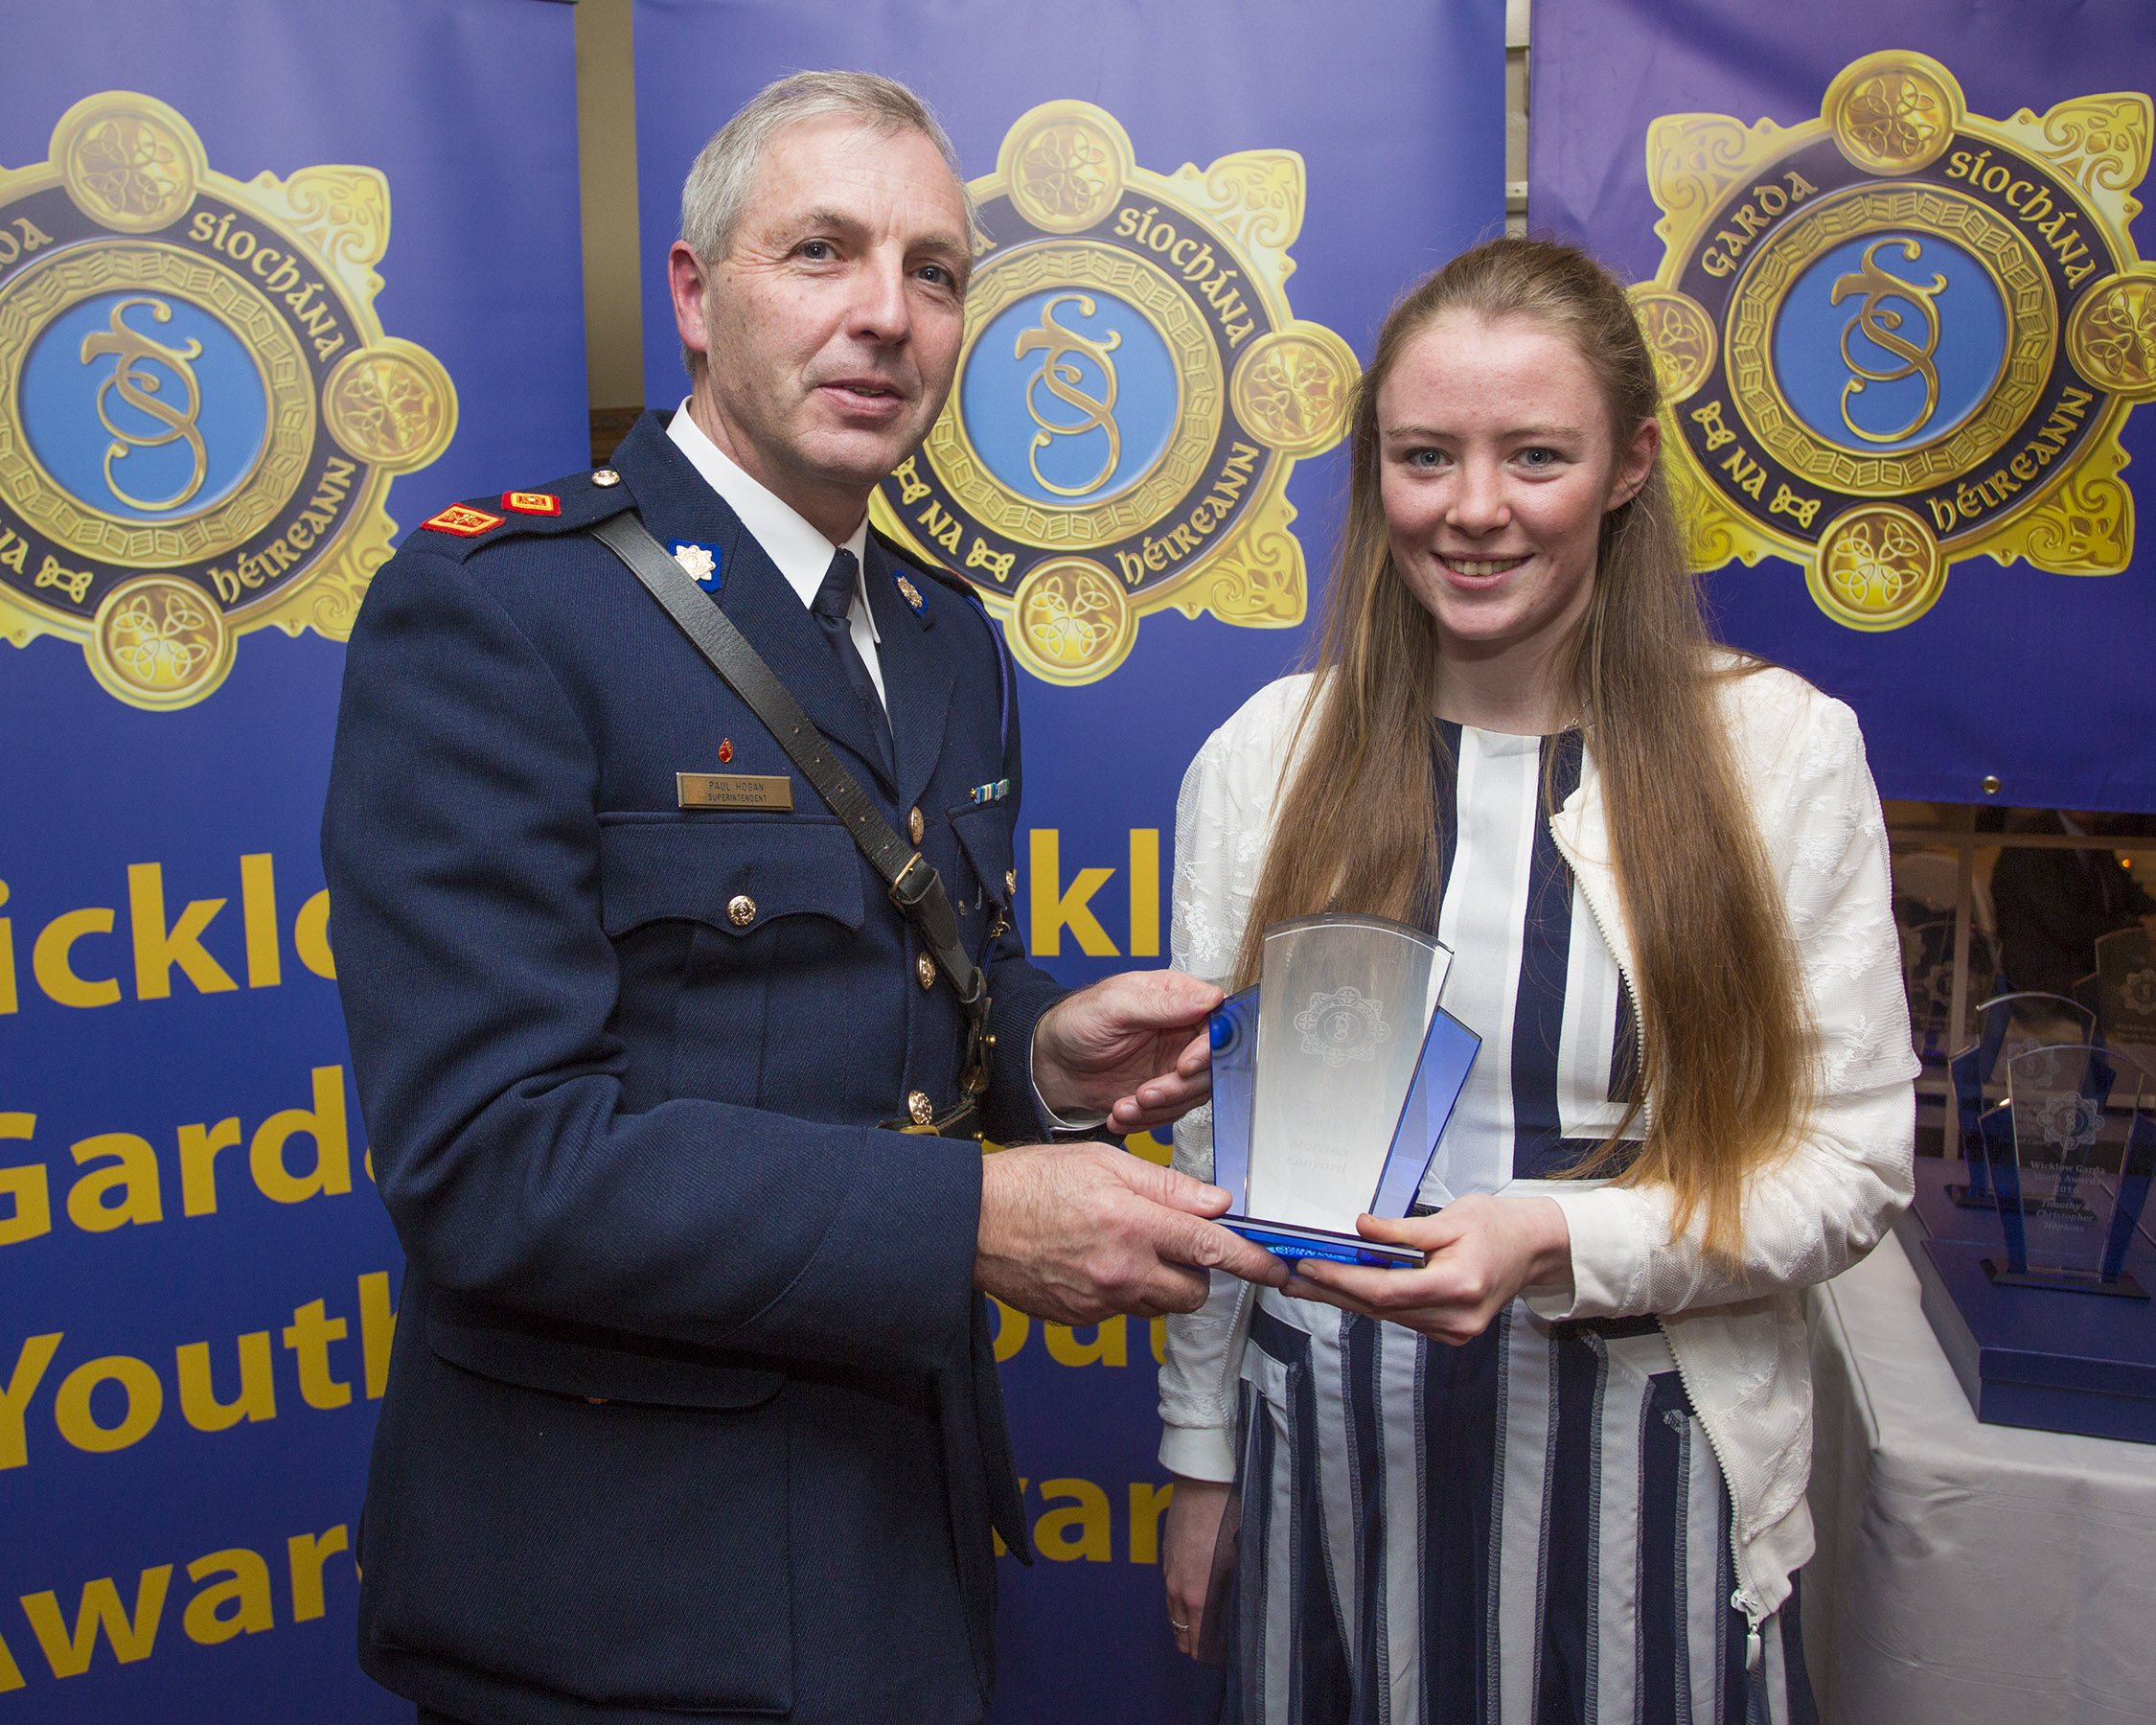 Martina Conyard from Arklow recieves her youth award from Superintendant Paul Hogan at the 2nd Annual Wicklow Garda Youth Awards which was held in the Grand Hotel, Wicklow Town.